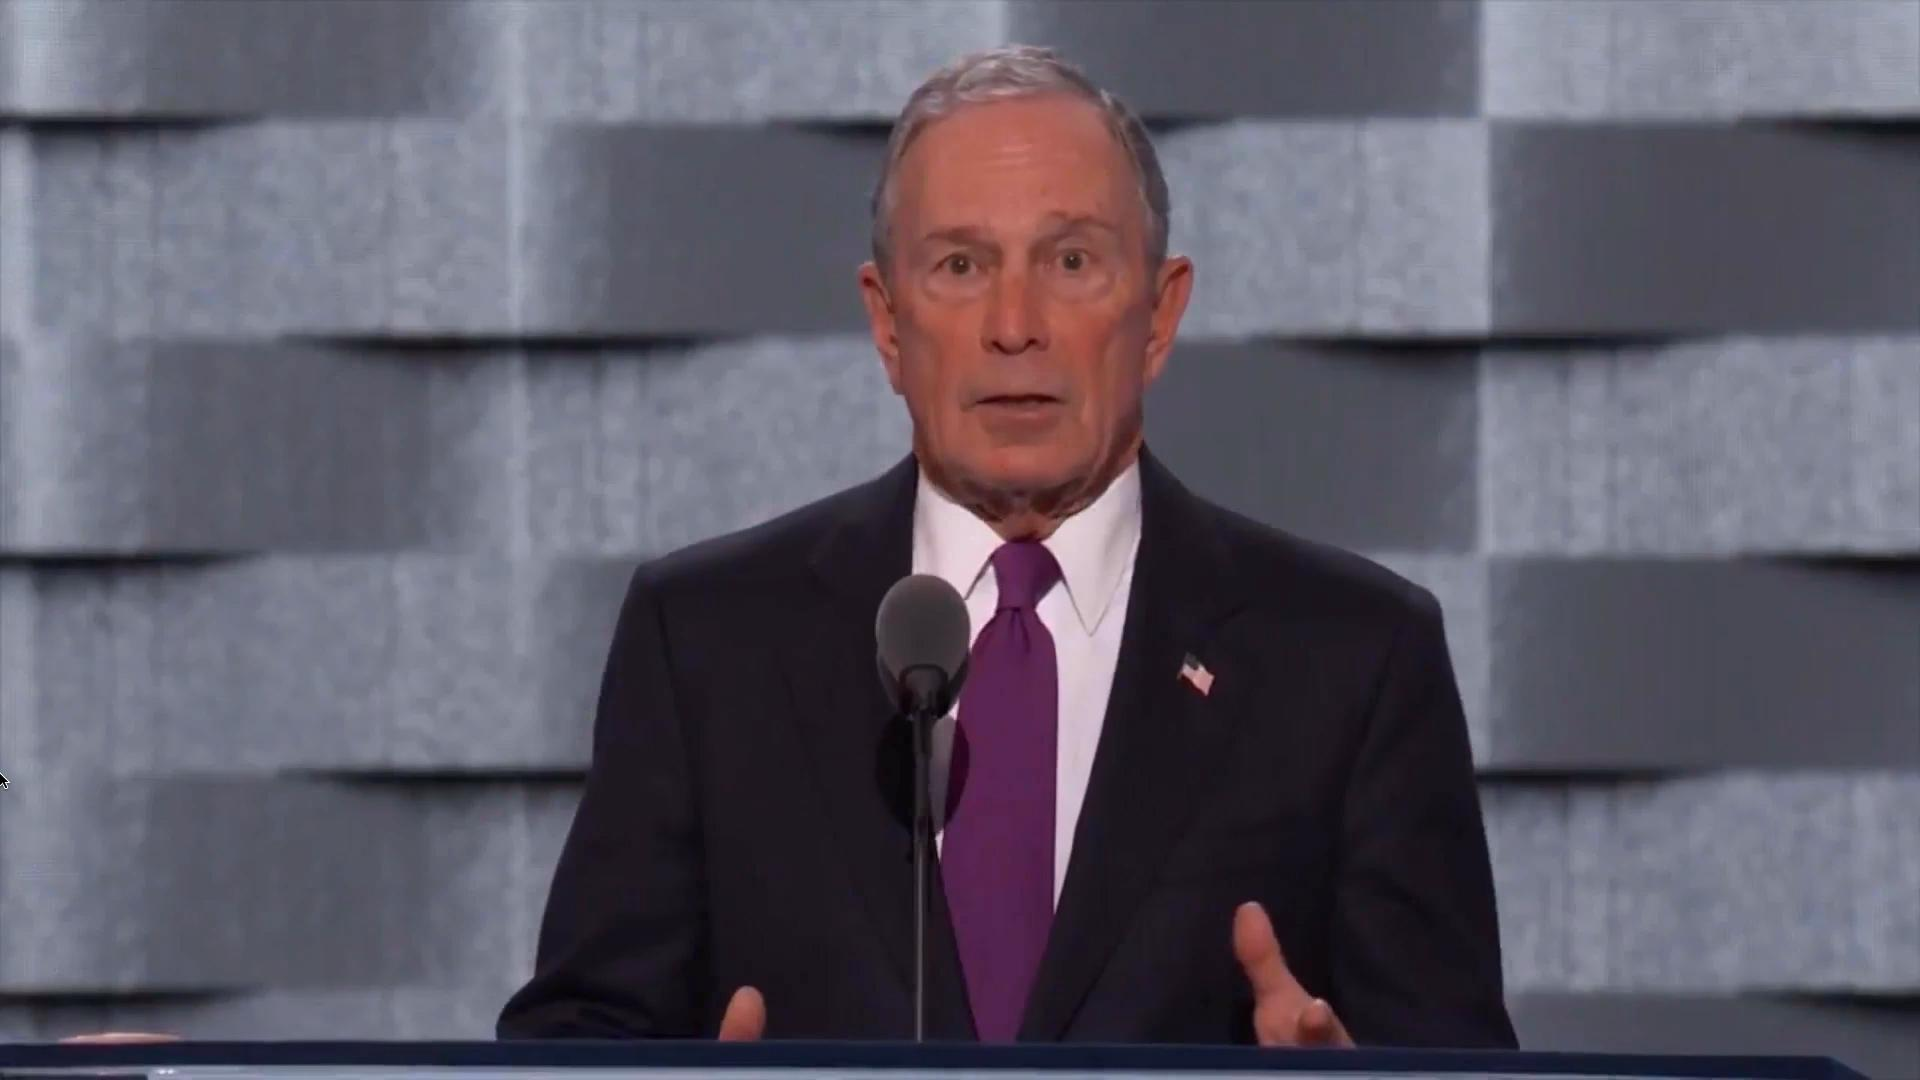 Clinton Is 'Sane' And 'Competent,' Unlike Trump, Bloomberg Tells U.S.